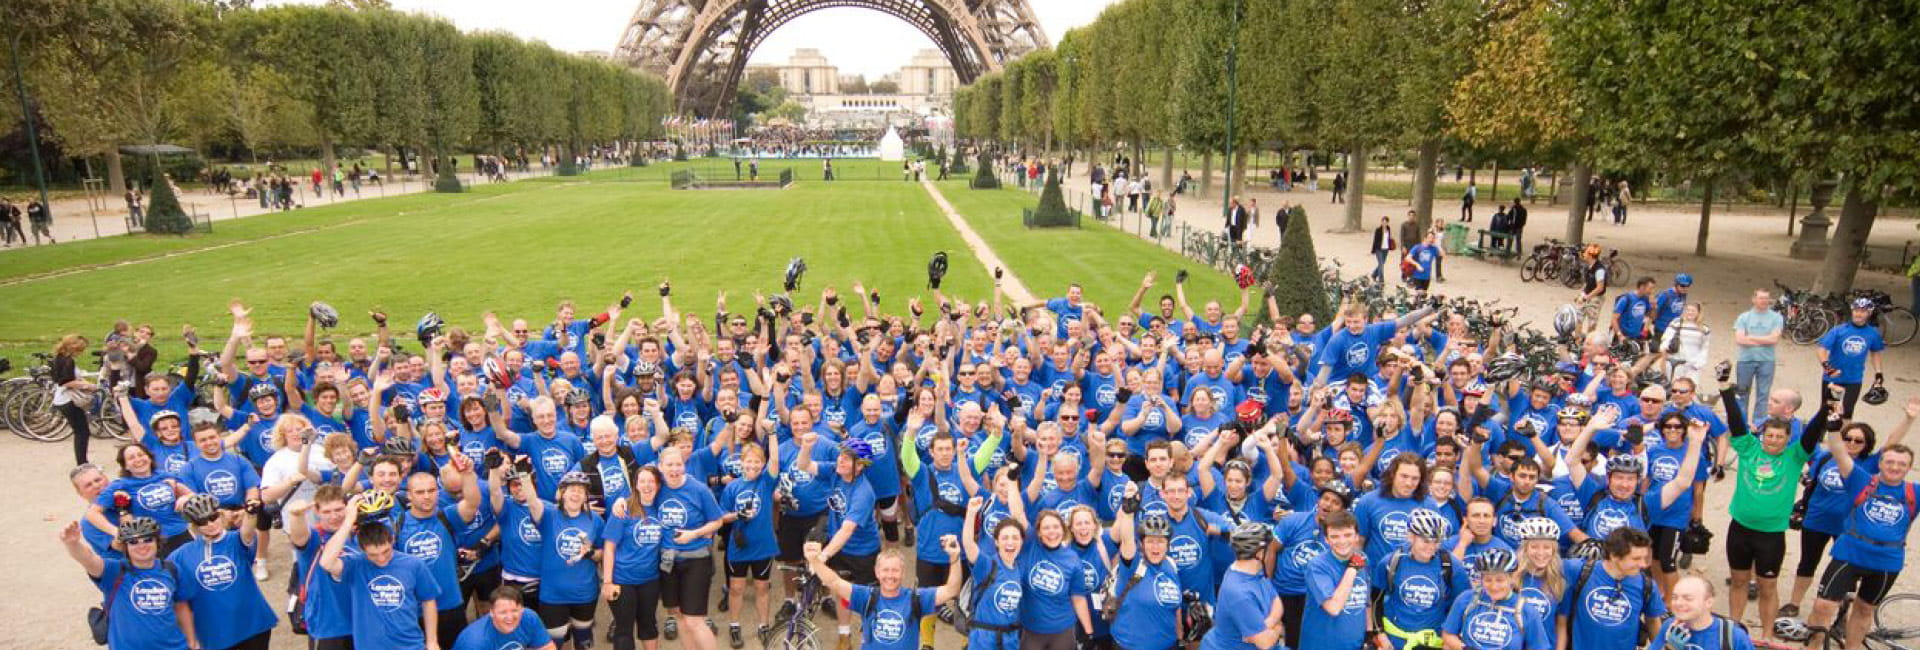 London to Paris 2019 - Challenge Event - The Myton Hospices